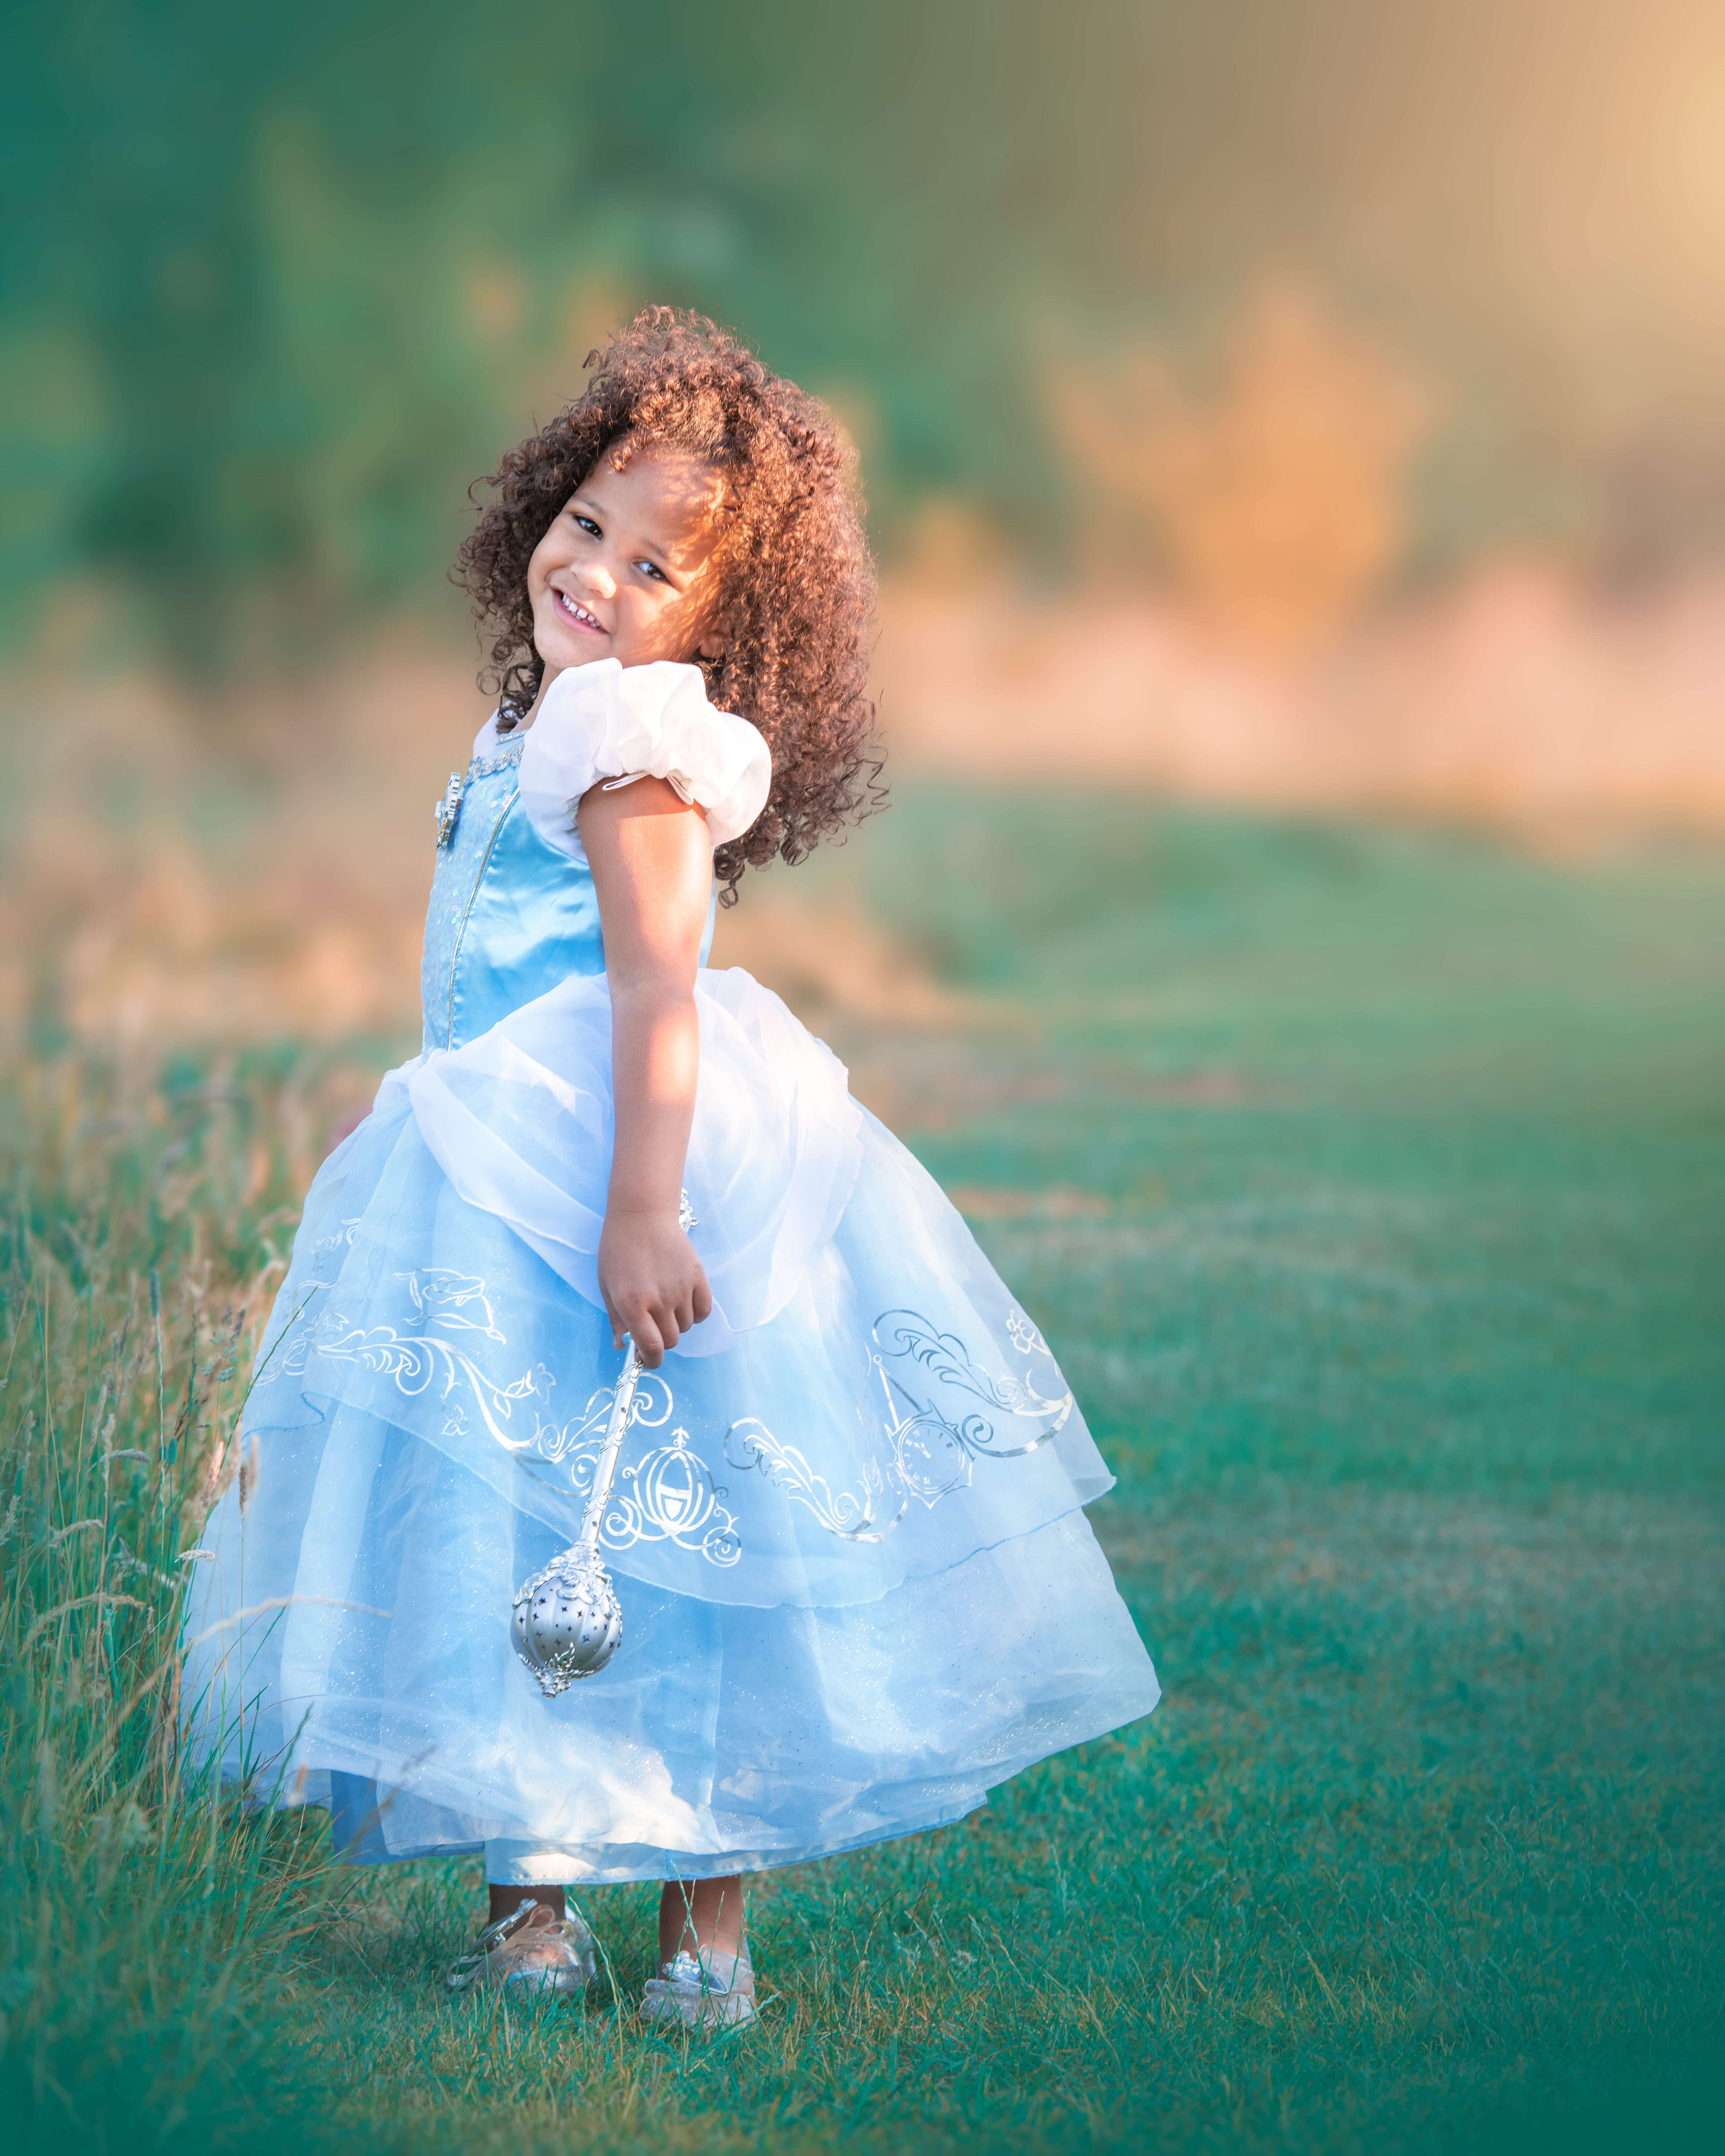 Children and family photography Essex